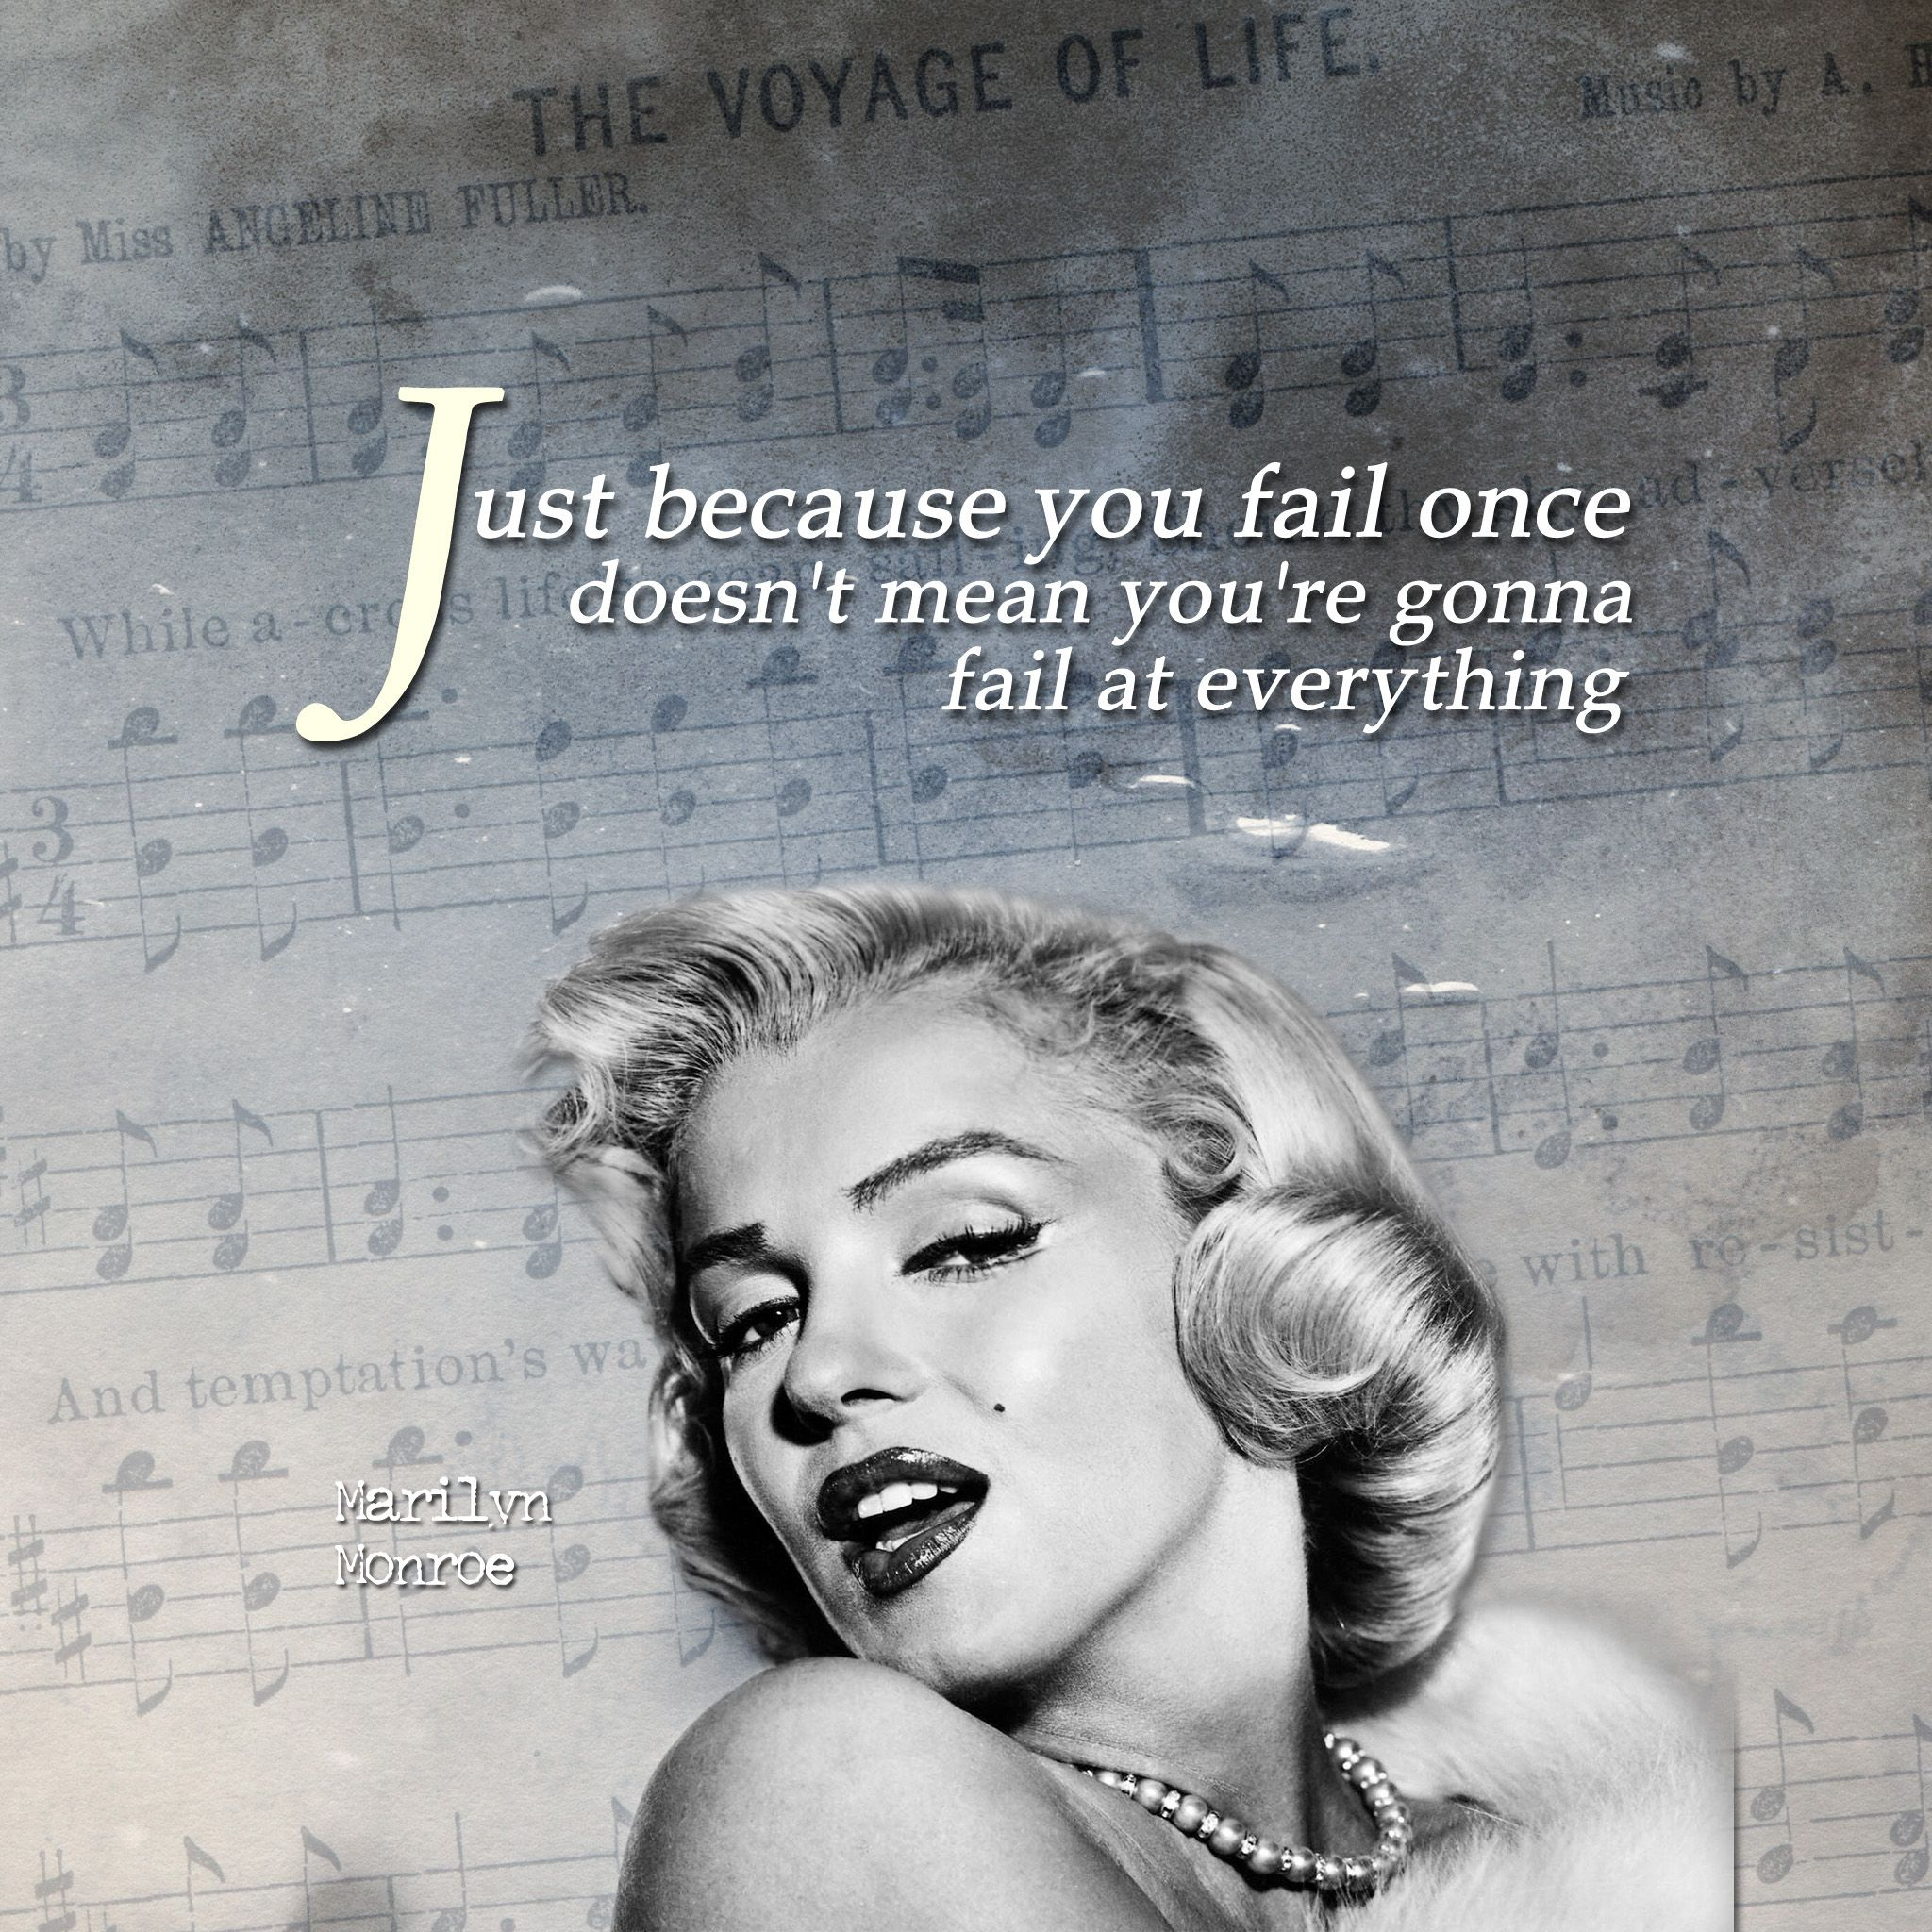 Inspirational Ipad Wallpaper Failure By Marilyn Monroe Ipad Wallpaper Marilyn Monroe Quotes Ipad Wallpaper Quotes Marilyn Monroe